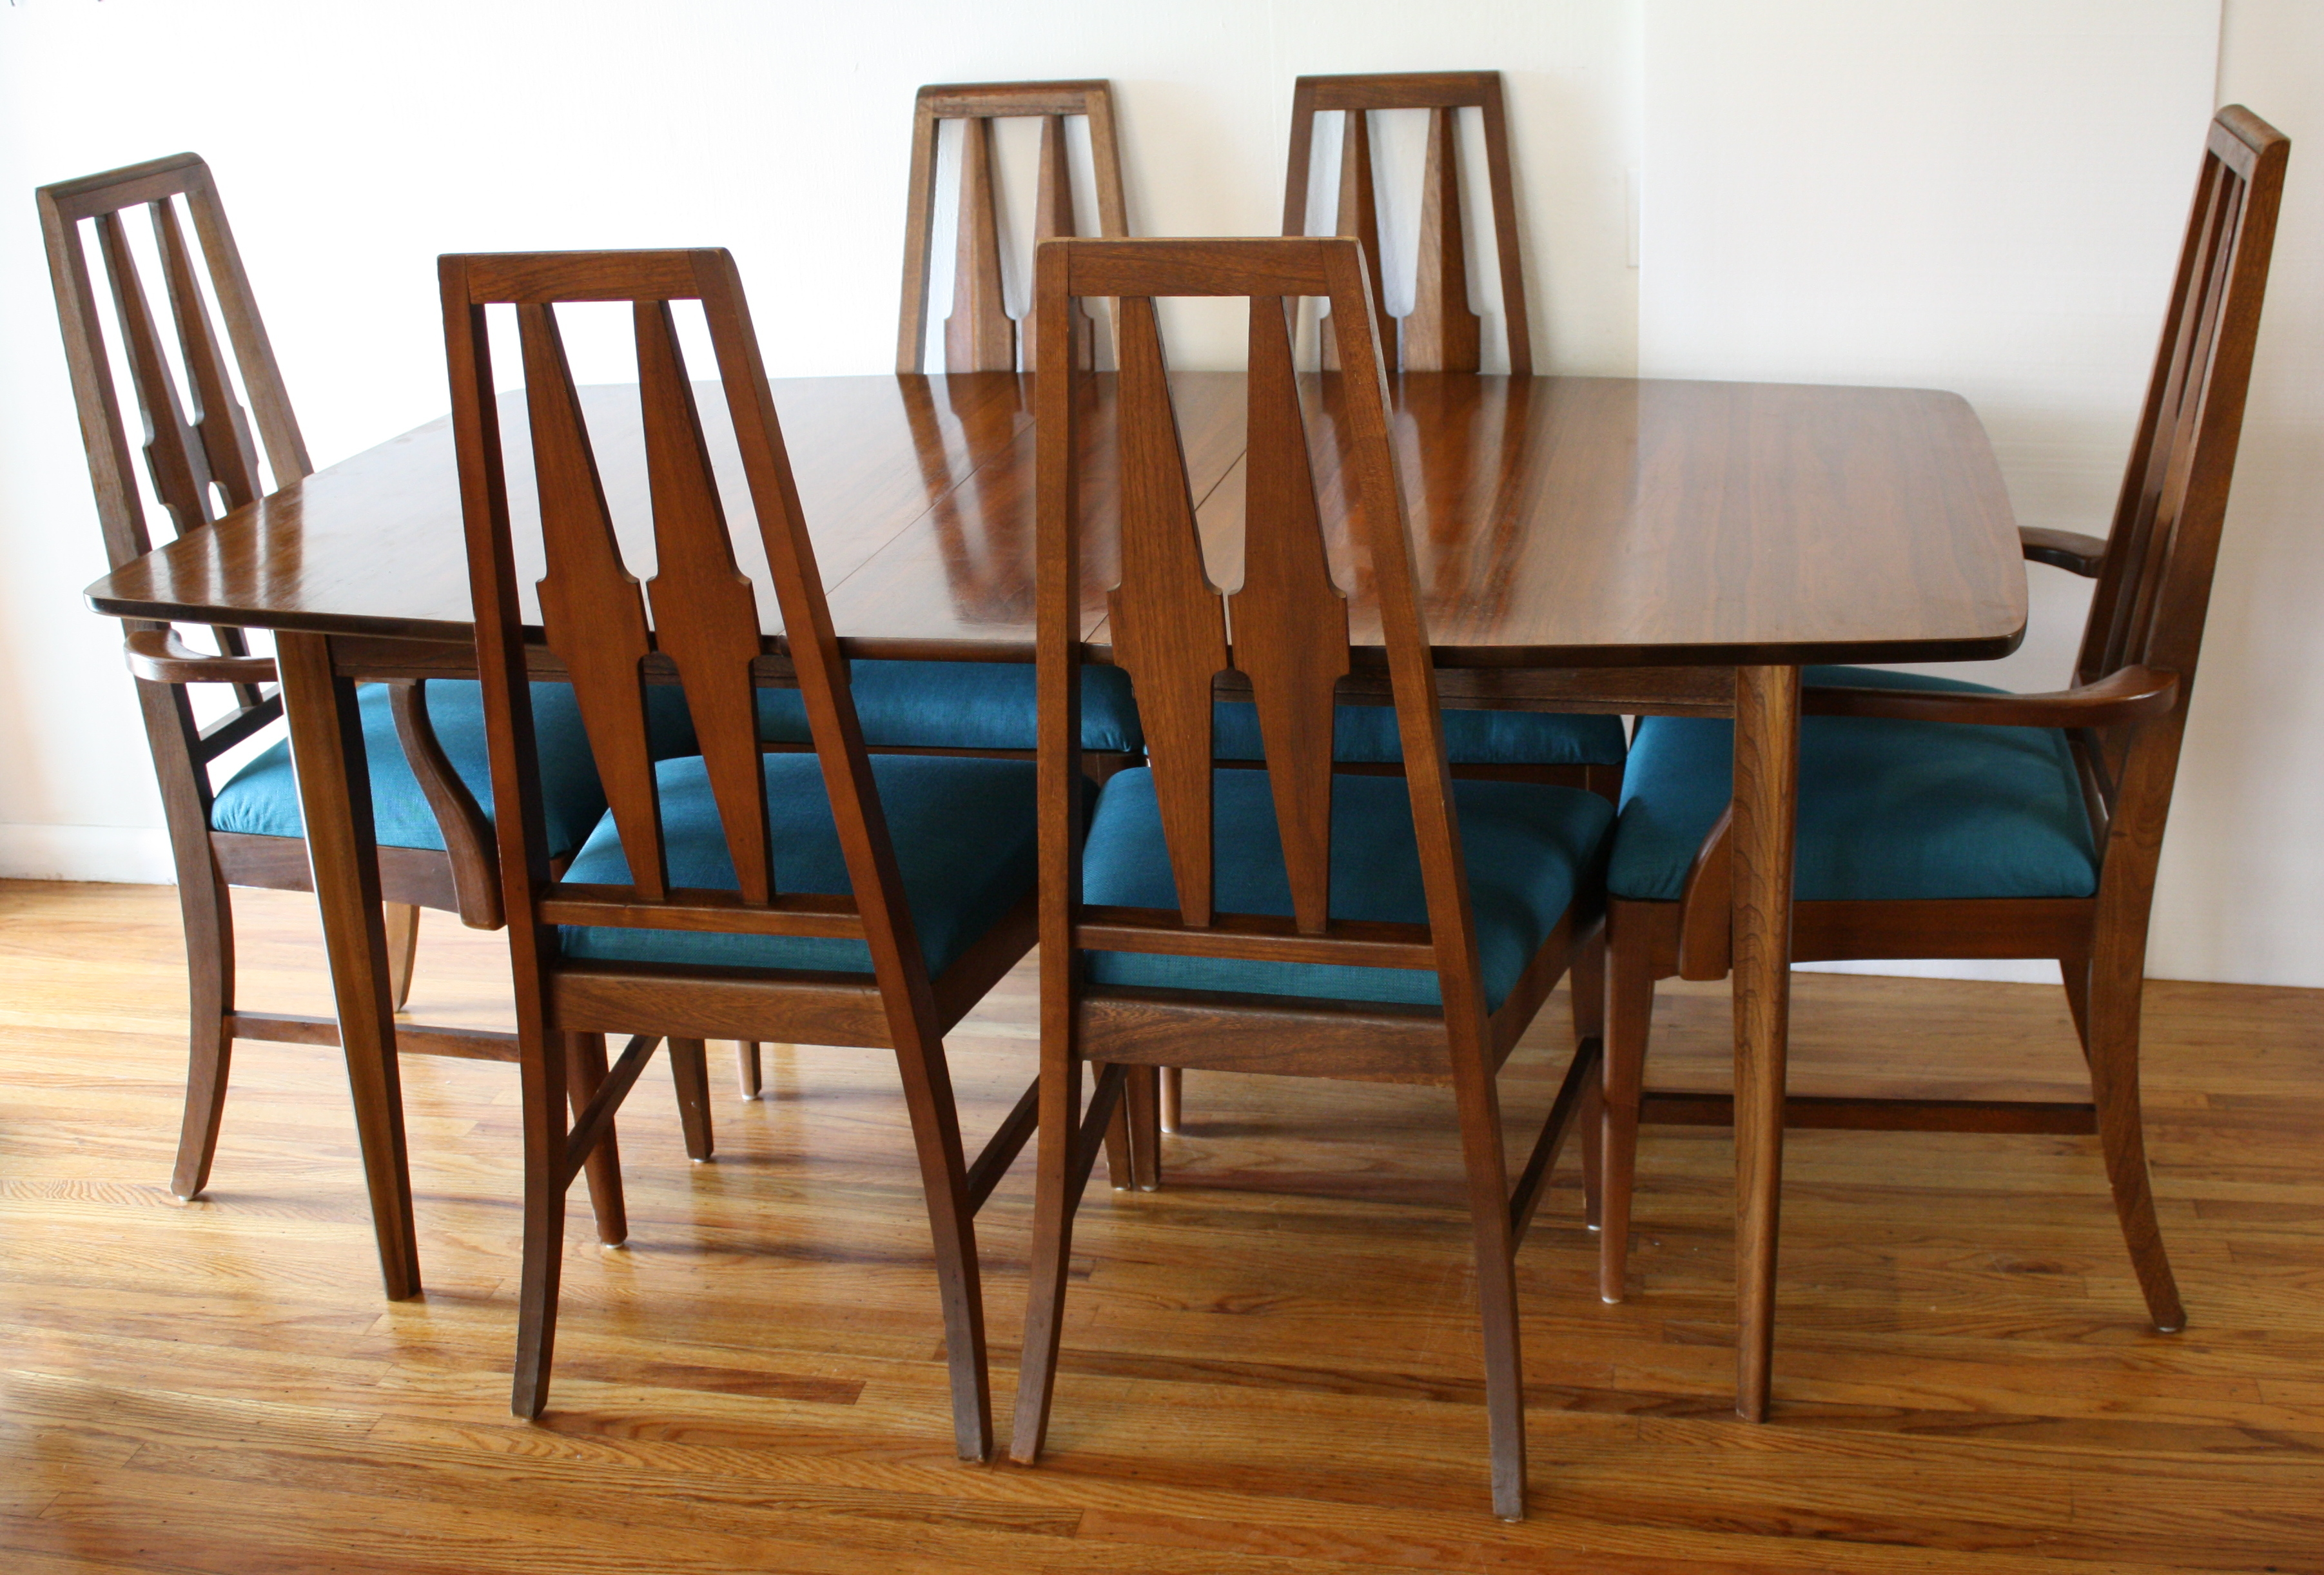 Broyhill Brasilia Dining Table And Broyhill Dining Chairs 1.JPG